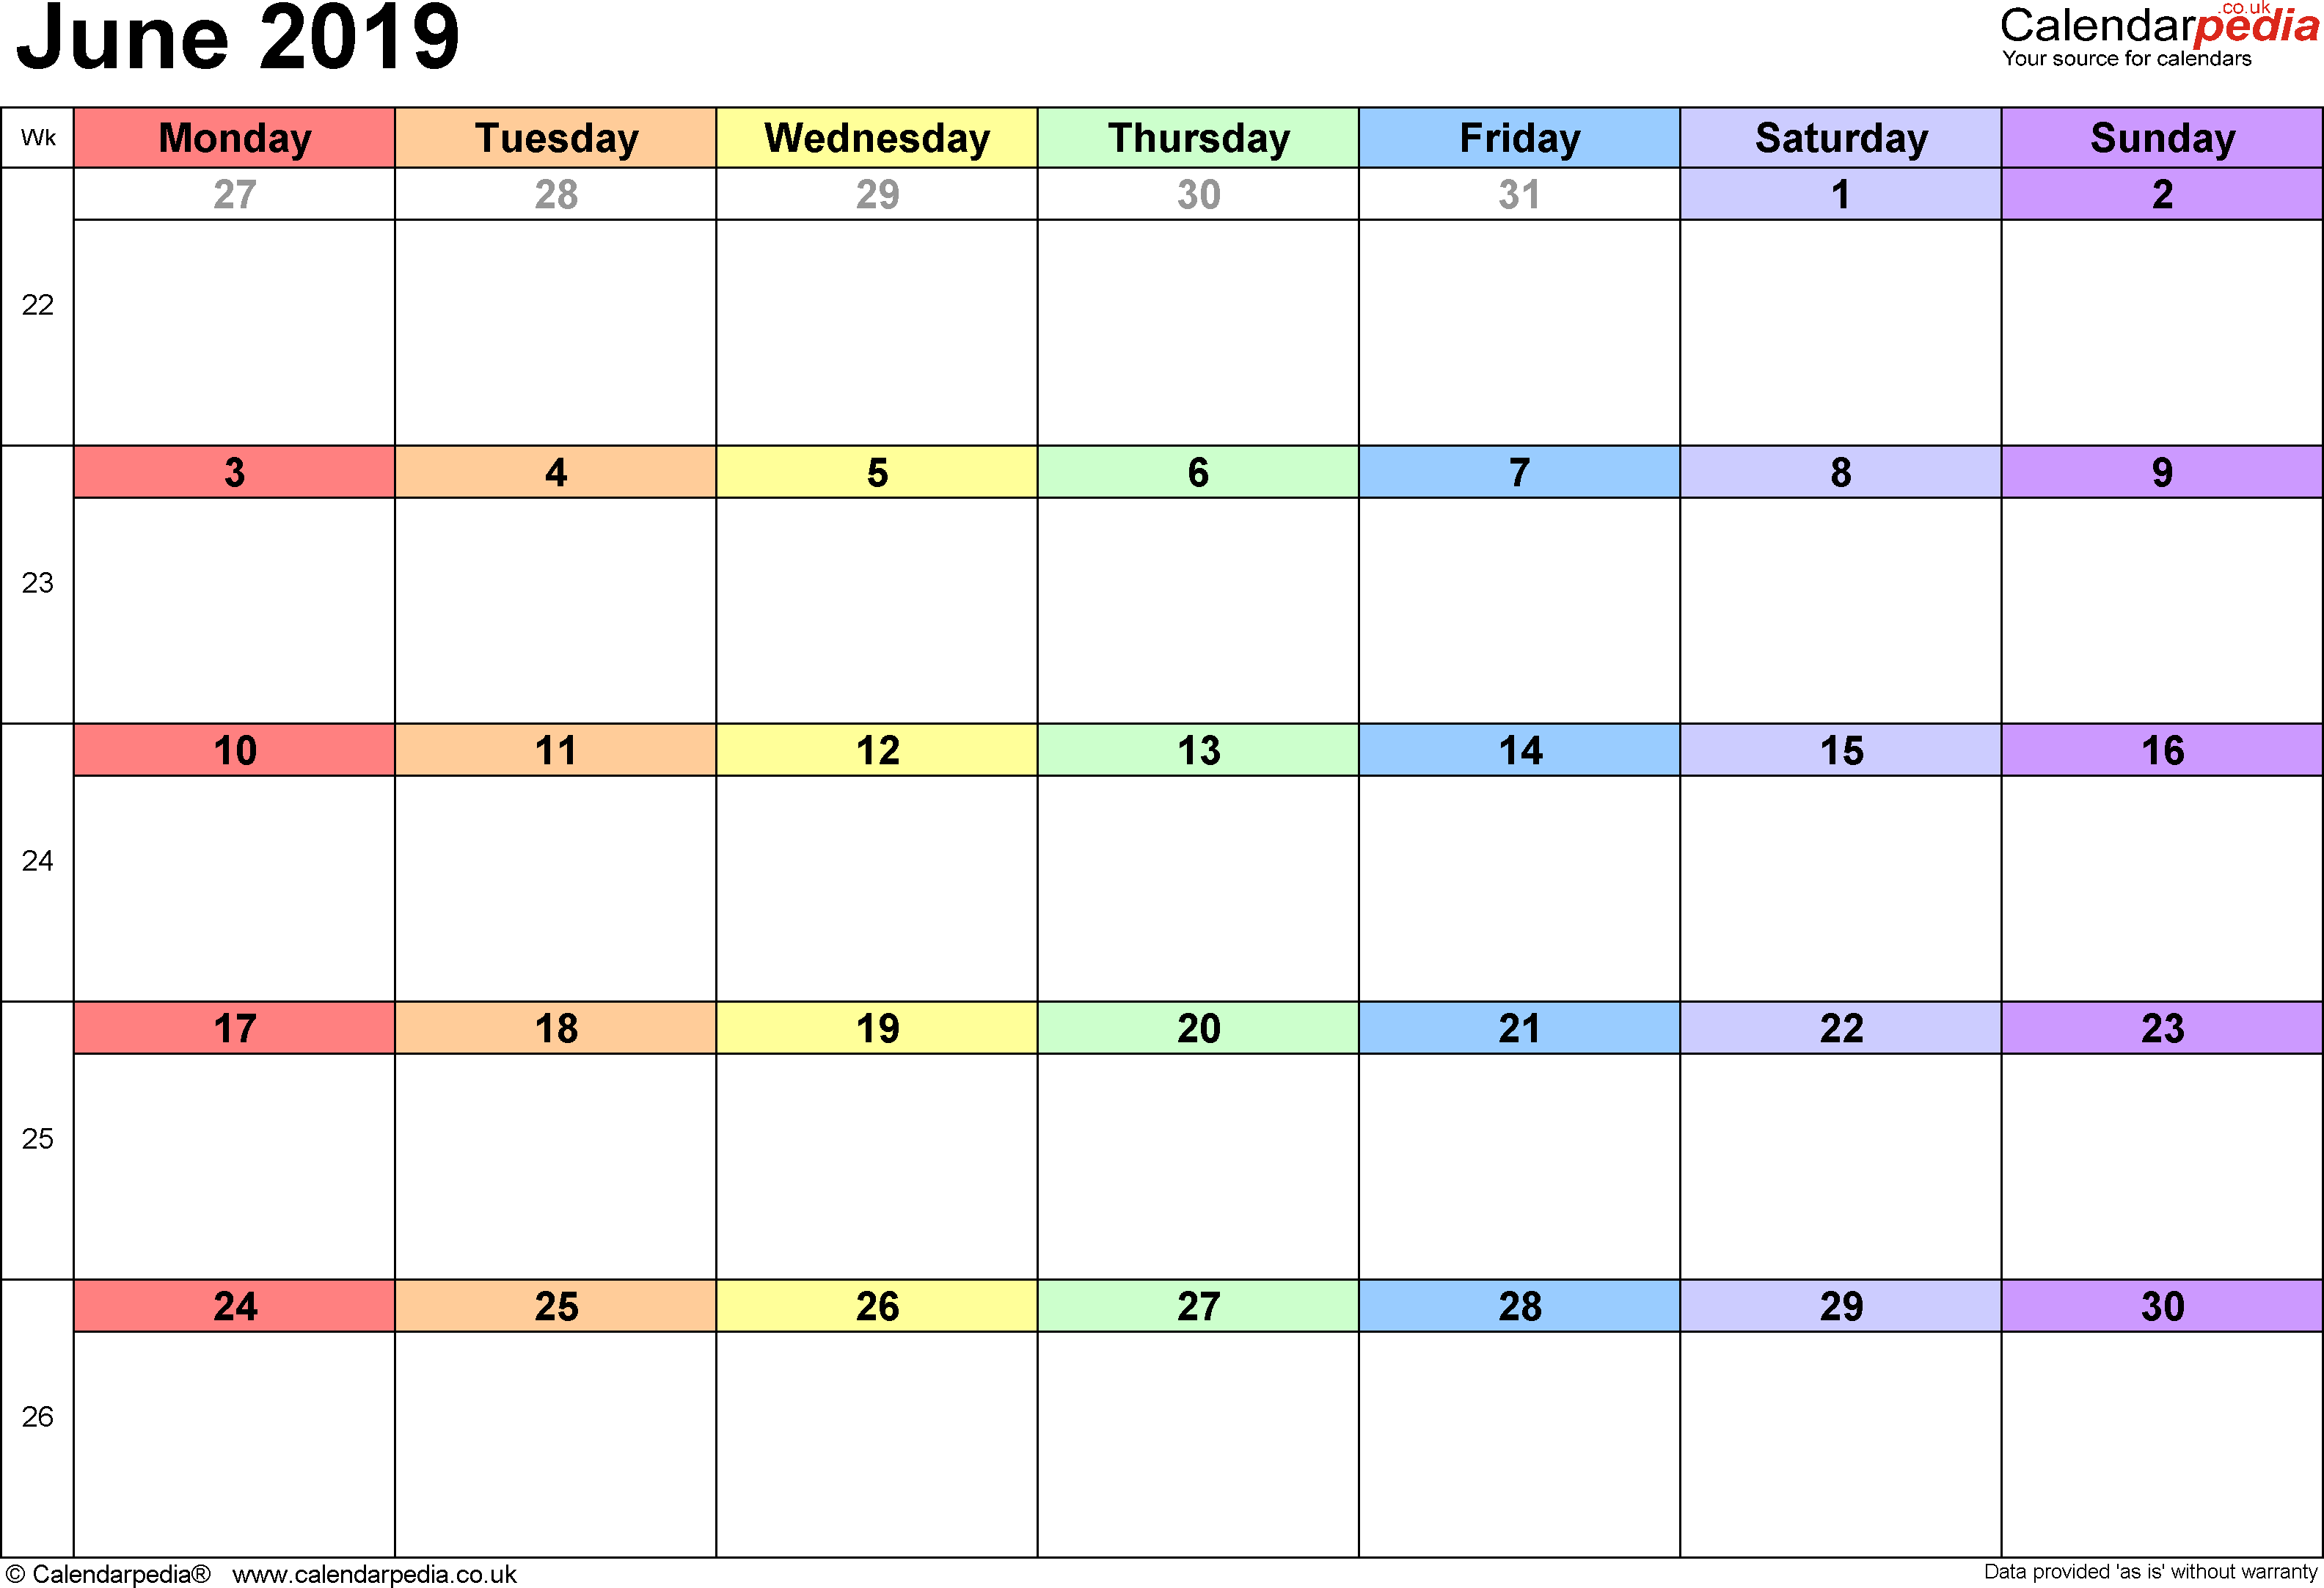 Calendar June 2019, landscape orientation, 1 page, with UK bank holidays and week numbers